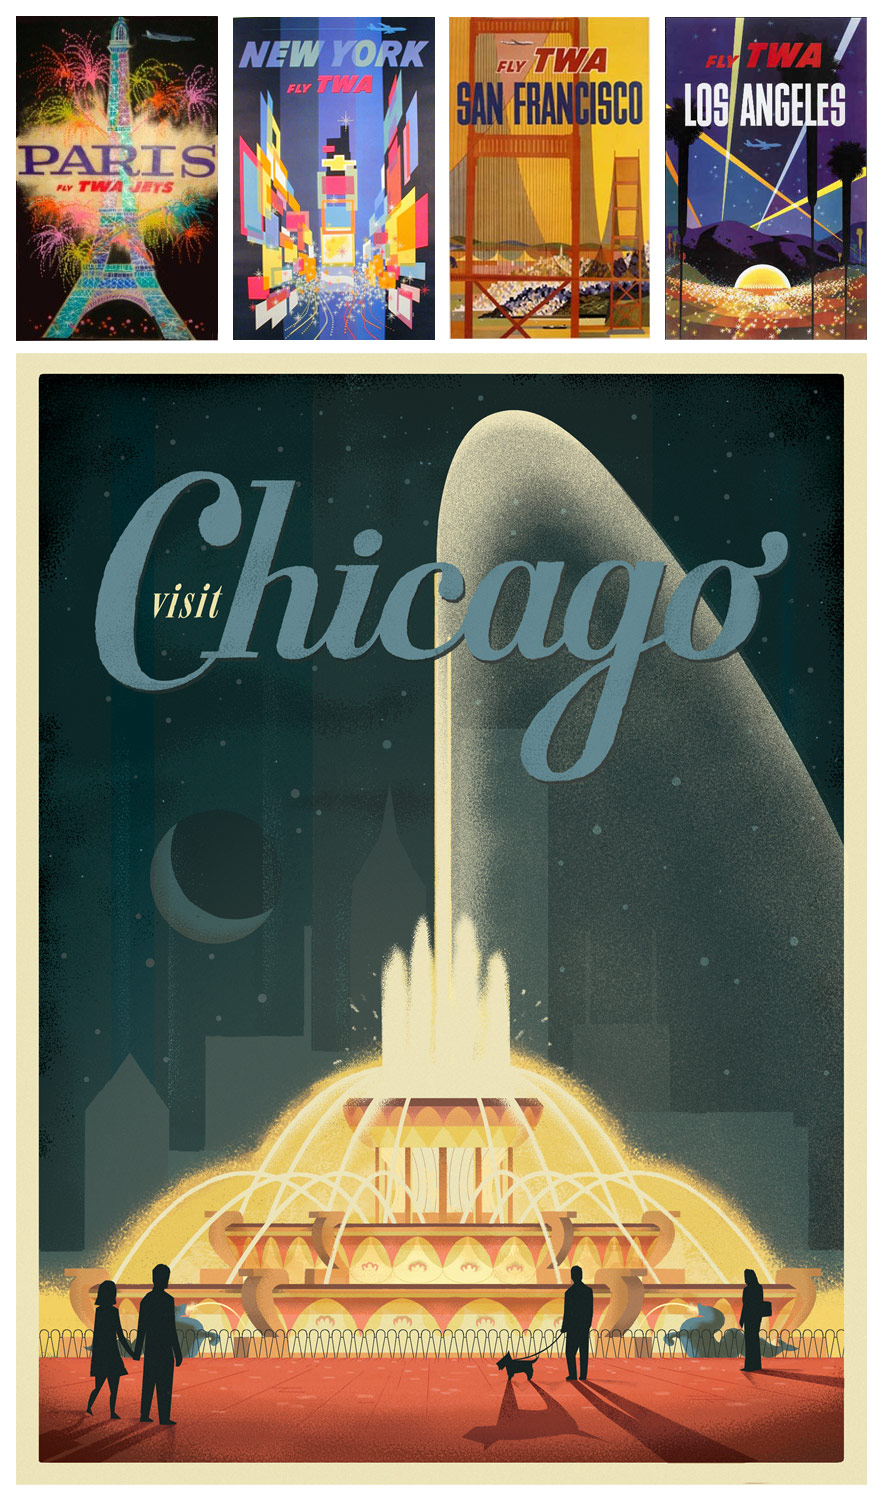 Poster design 20th century - Below Are Examples Of The Period Range Our Chicago Designs Have Covered From Julian Baker S Early 20th Century Water Tower Design To Shelby Roddifer S